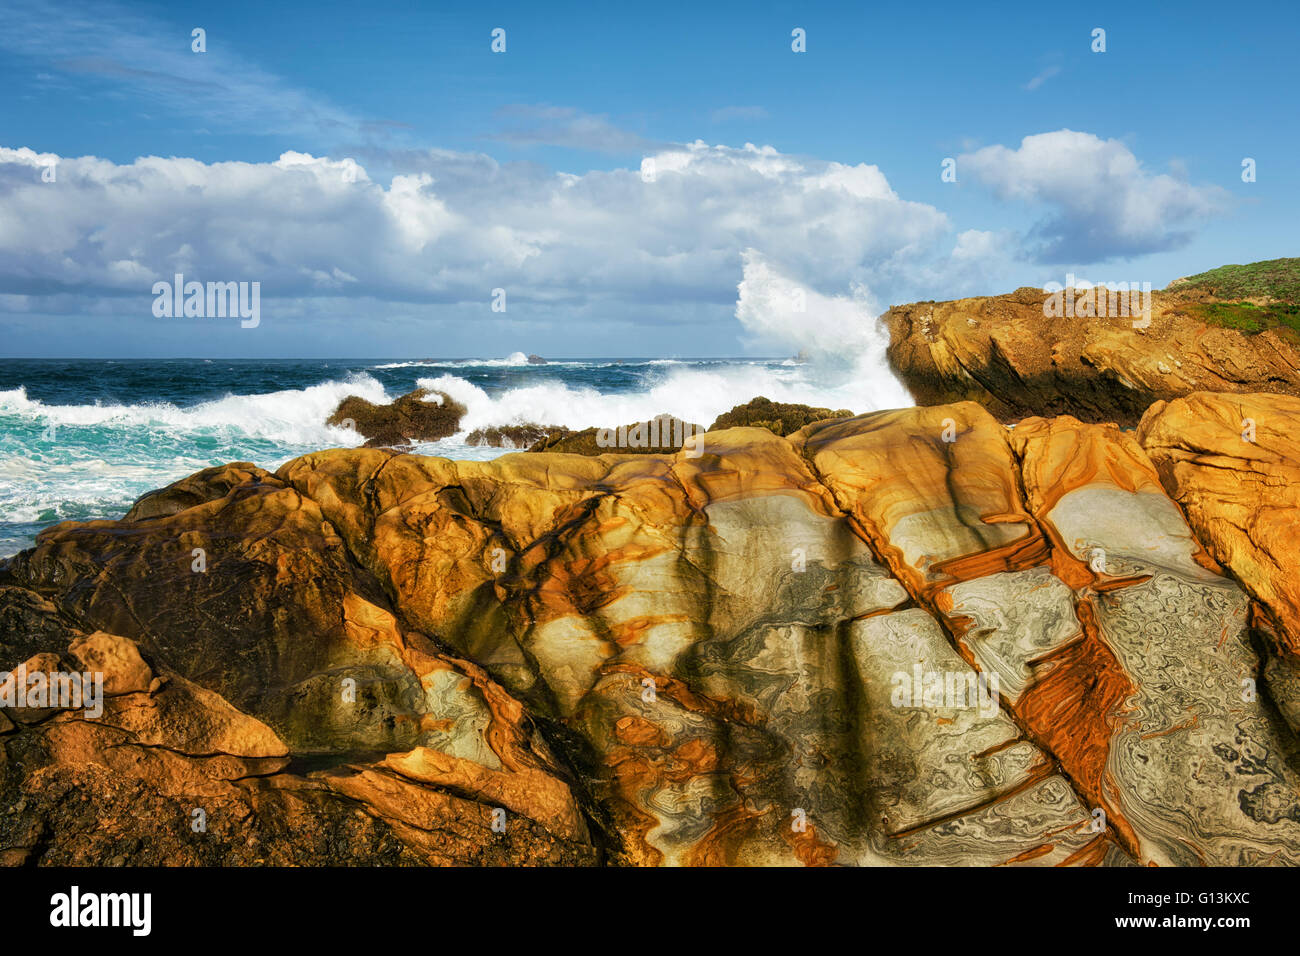 Mosaic patterns on the sandstone cliffs and crashing waves at Point Lobos State Natural Reserve and California's - Stock Image